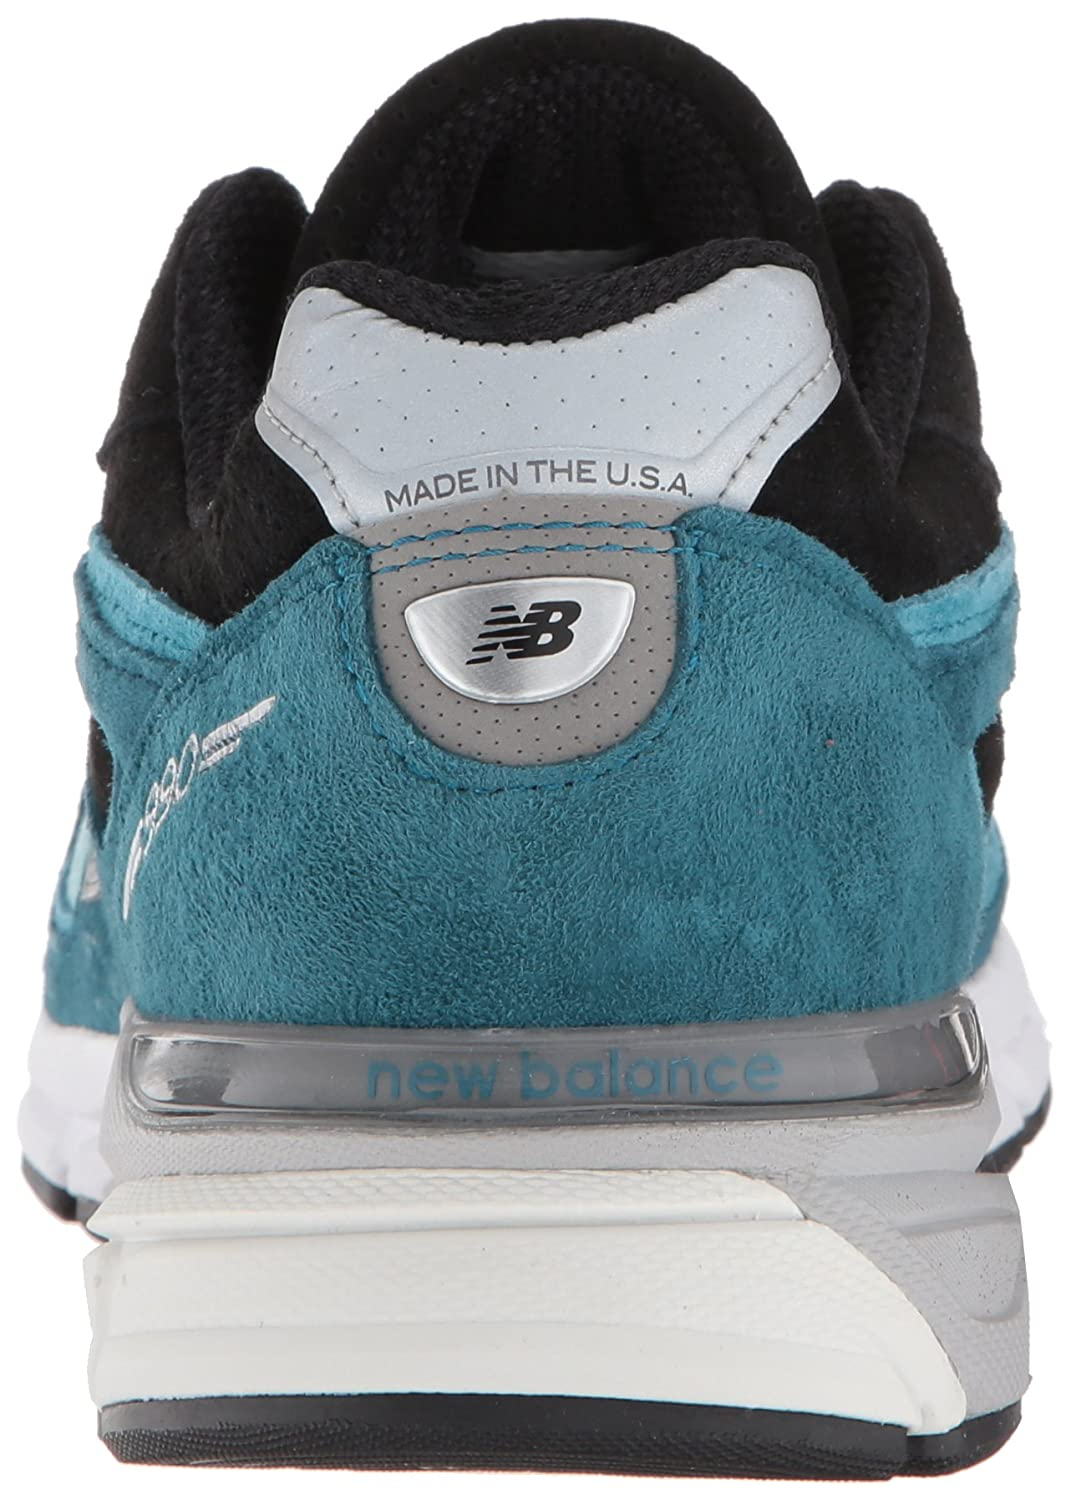 New-Balance-990-990v4-Classicc-Retro-Fashion-Sneaker-Made-in-USA thumbnail 33